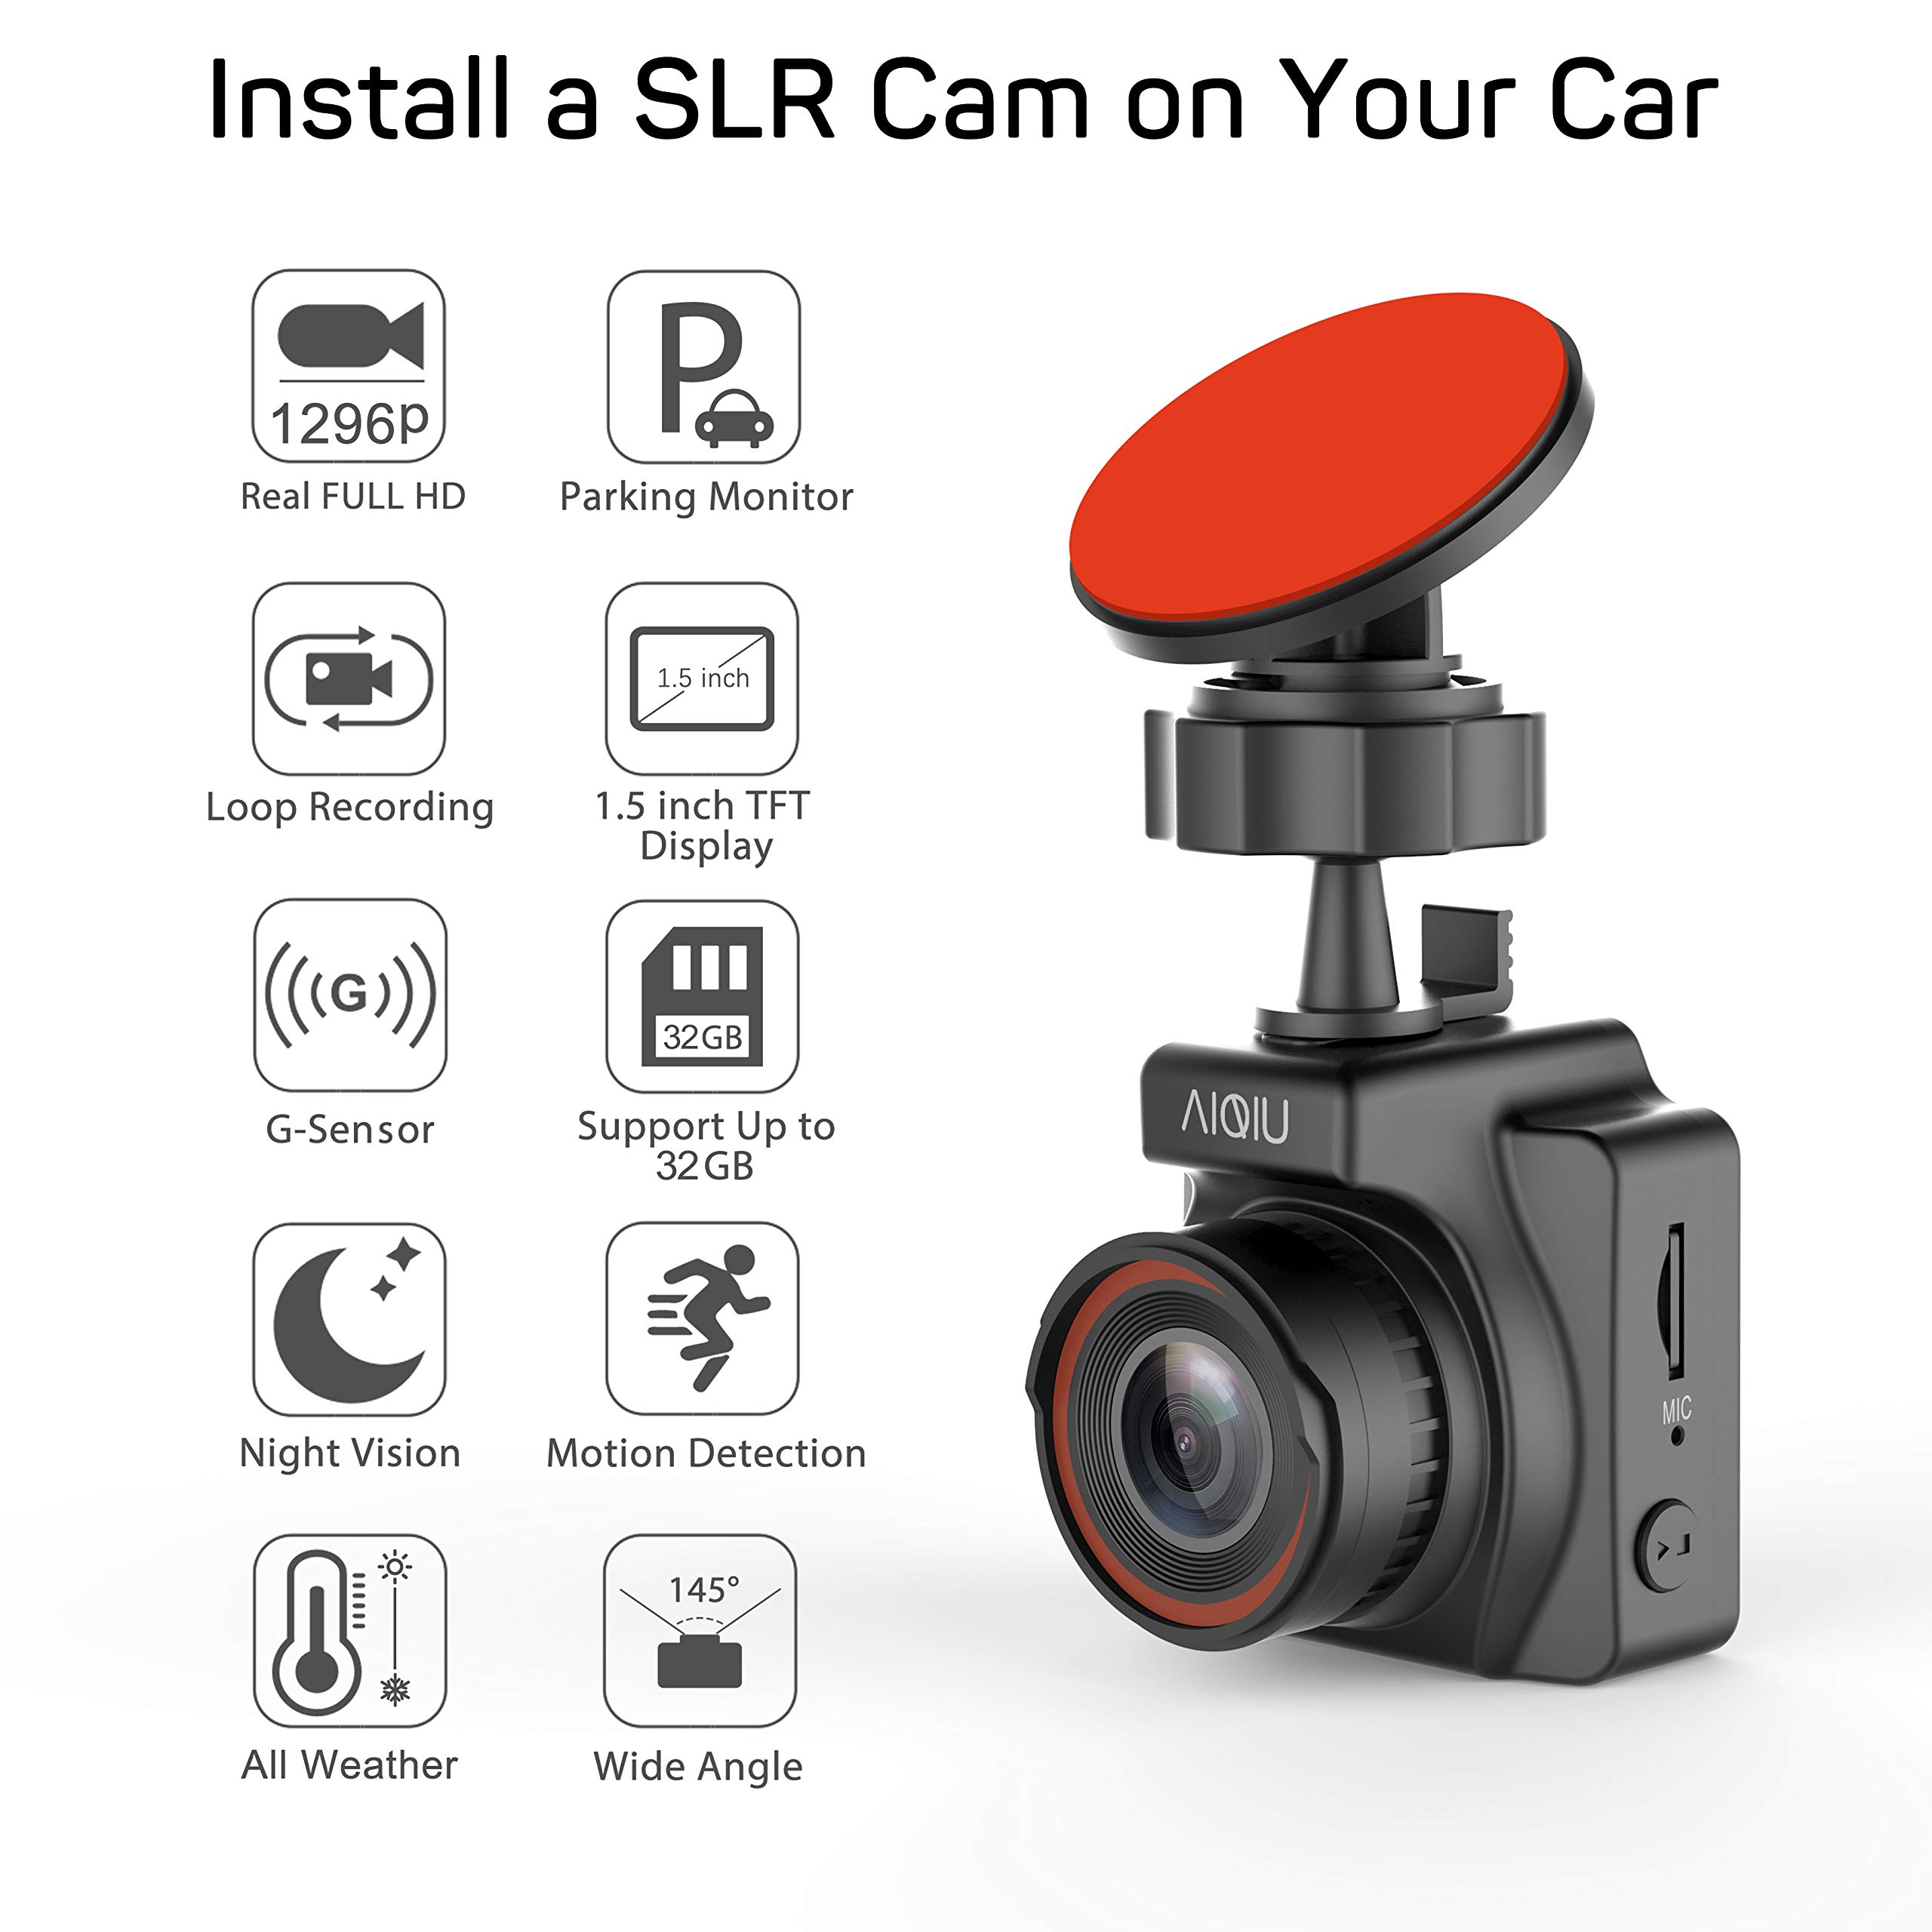 Dash-Cam-AIQIU-C1-1296P-FHD-Car-Driving-Recorder-15-Mini-Night-Vision-Vehicle-Dashboard-Camera-with-G-Sensor-Loop-Recording-WDR-Motion-Detection-Parking-Monitor